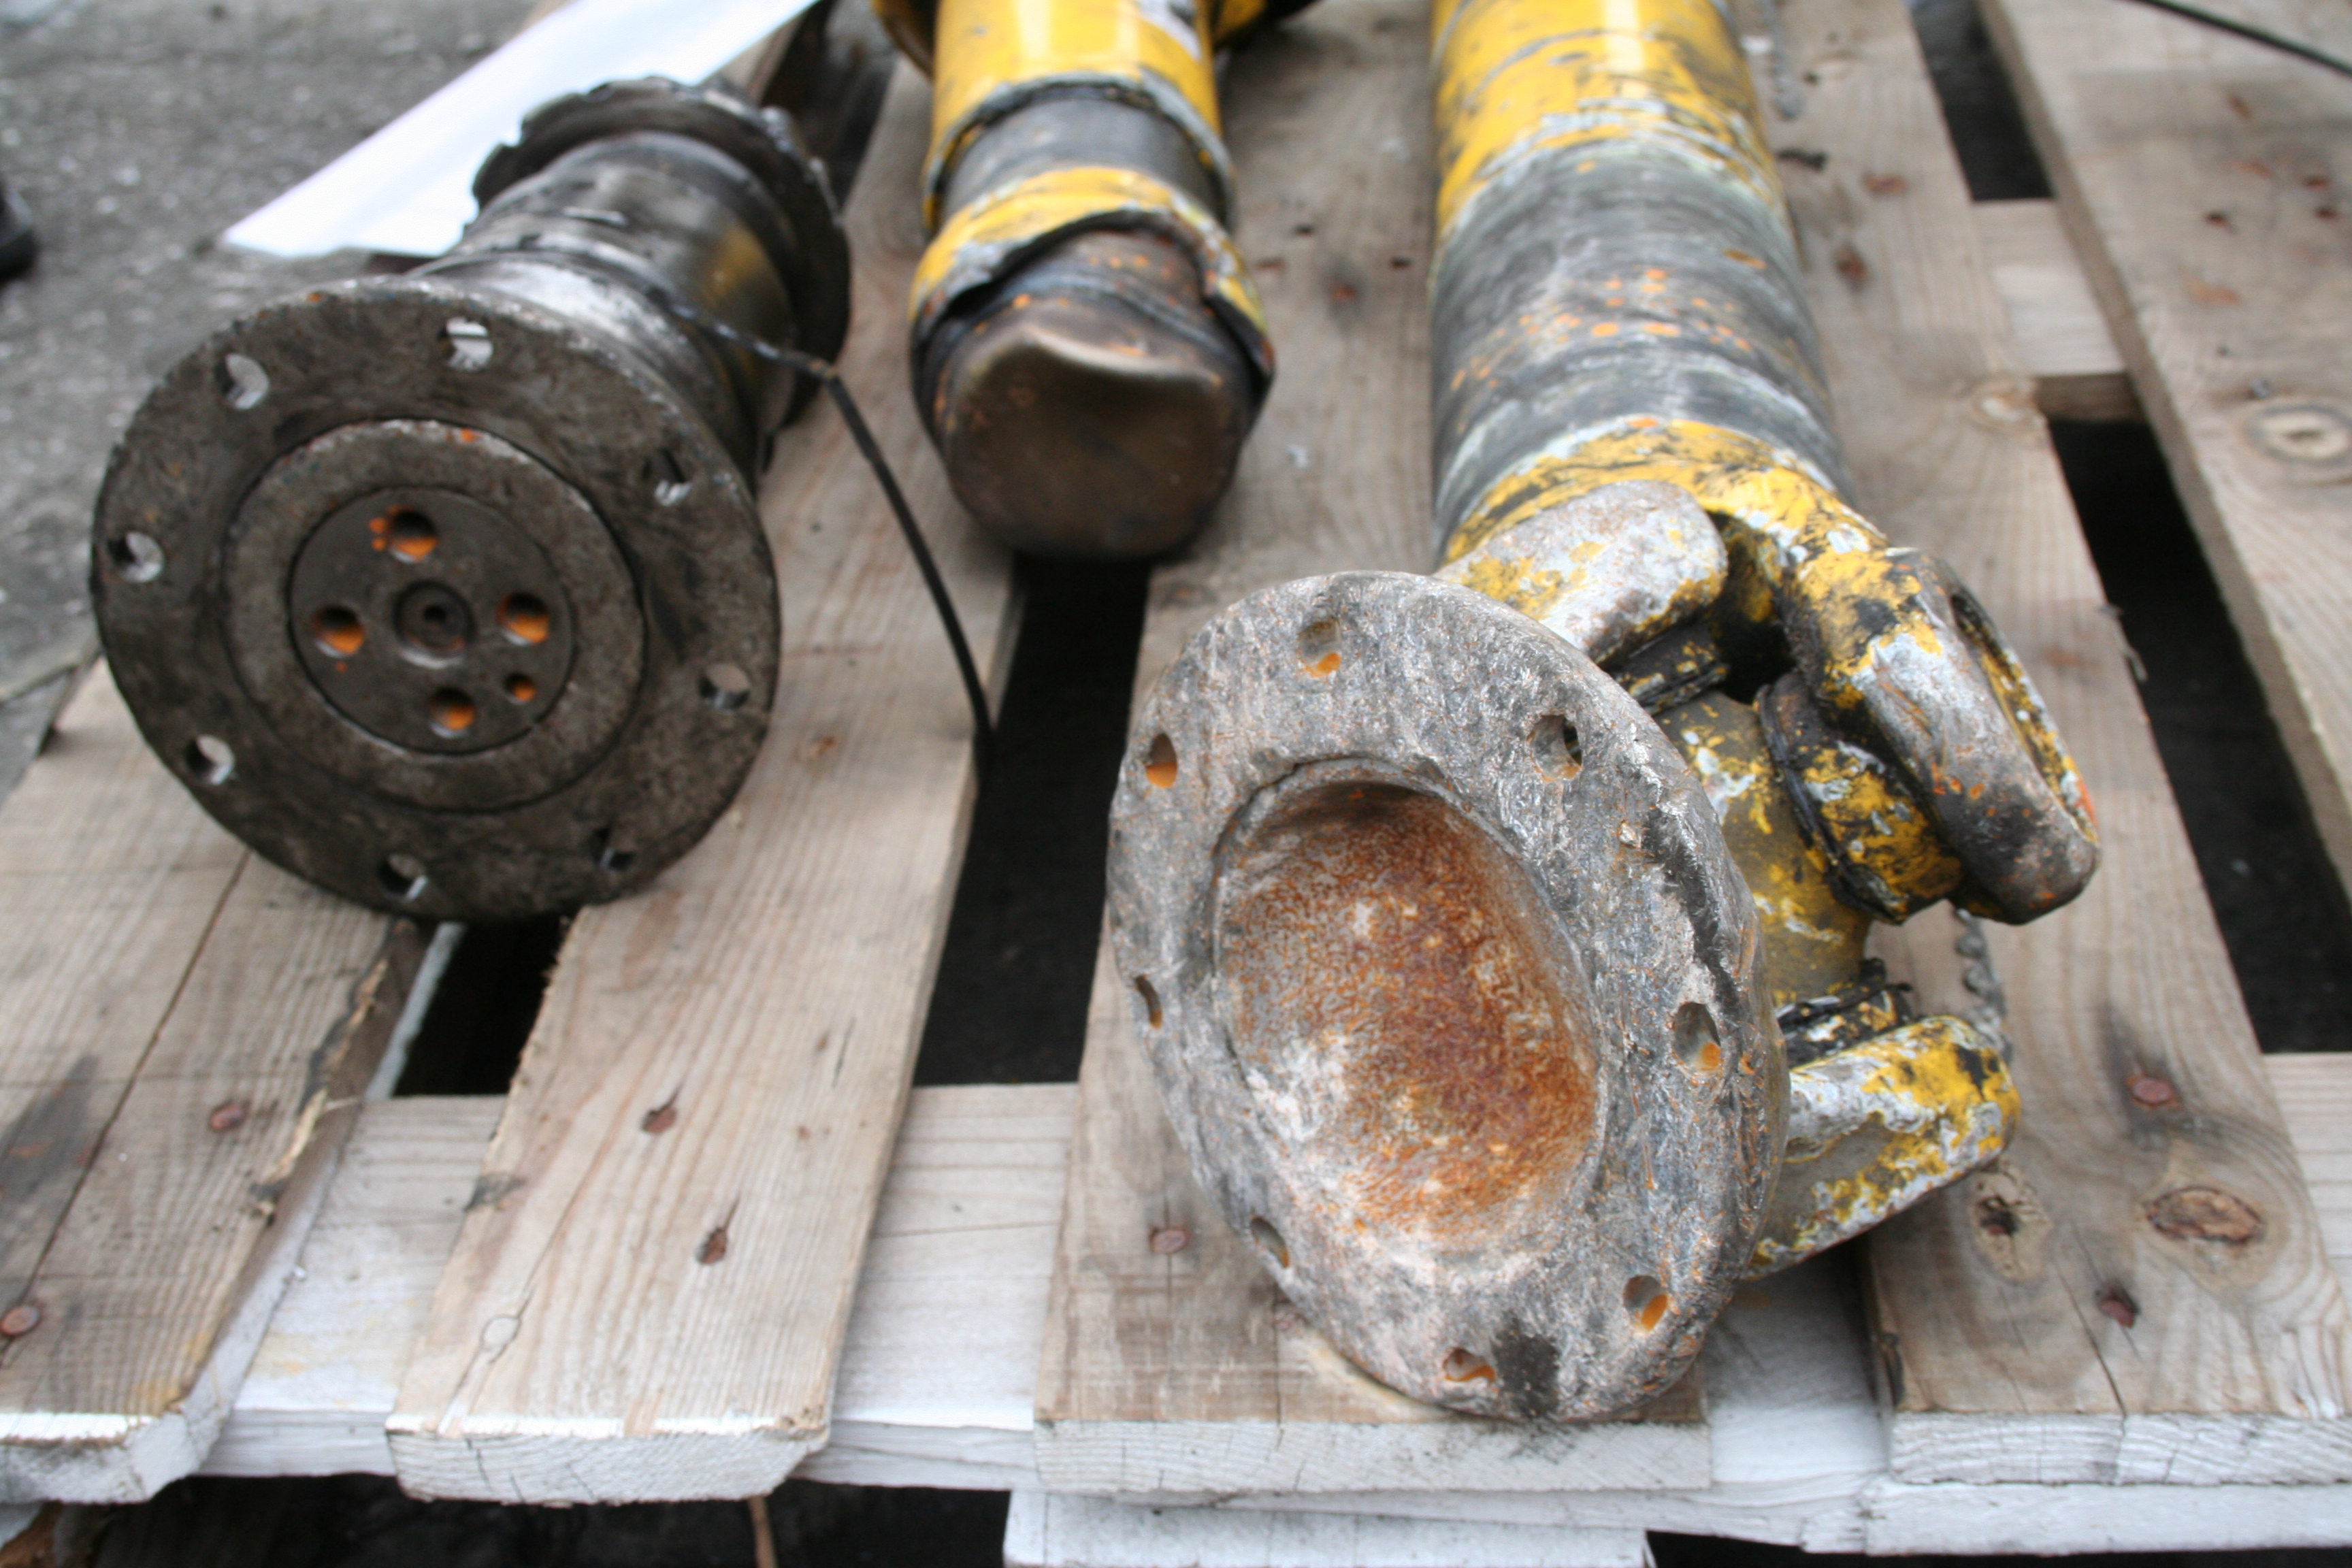 Rail Cardan shaft